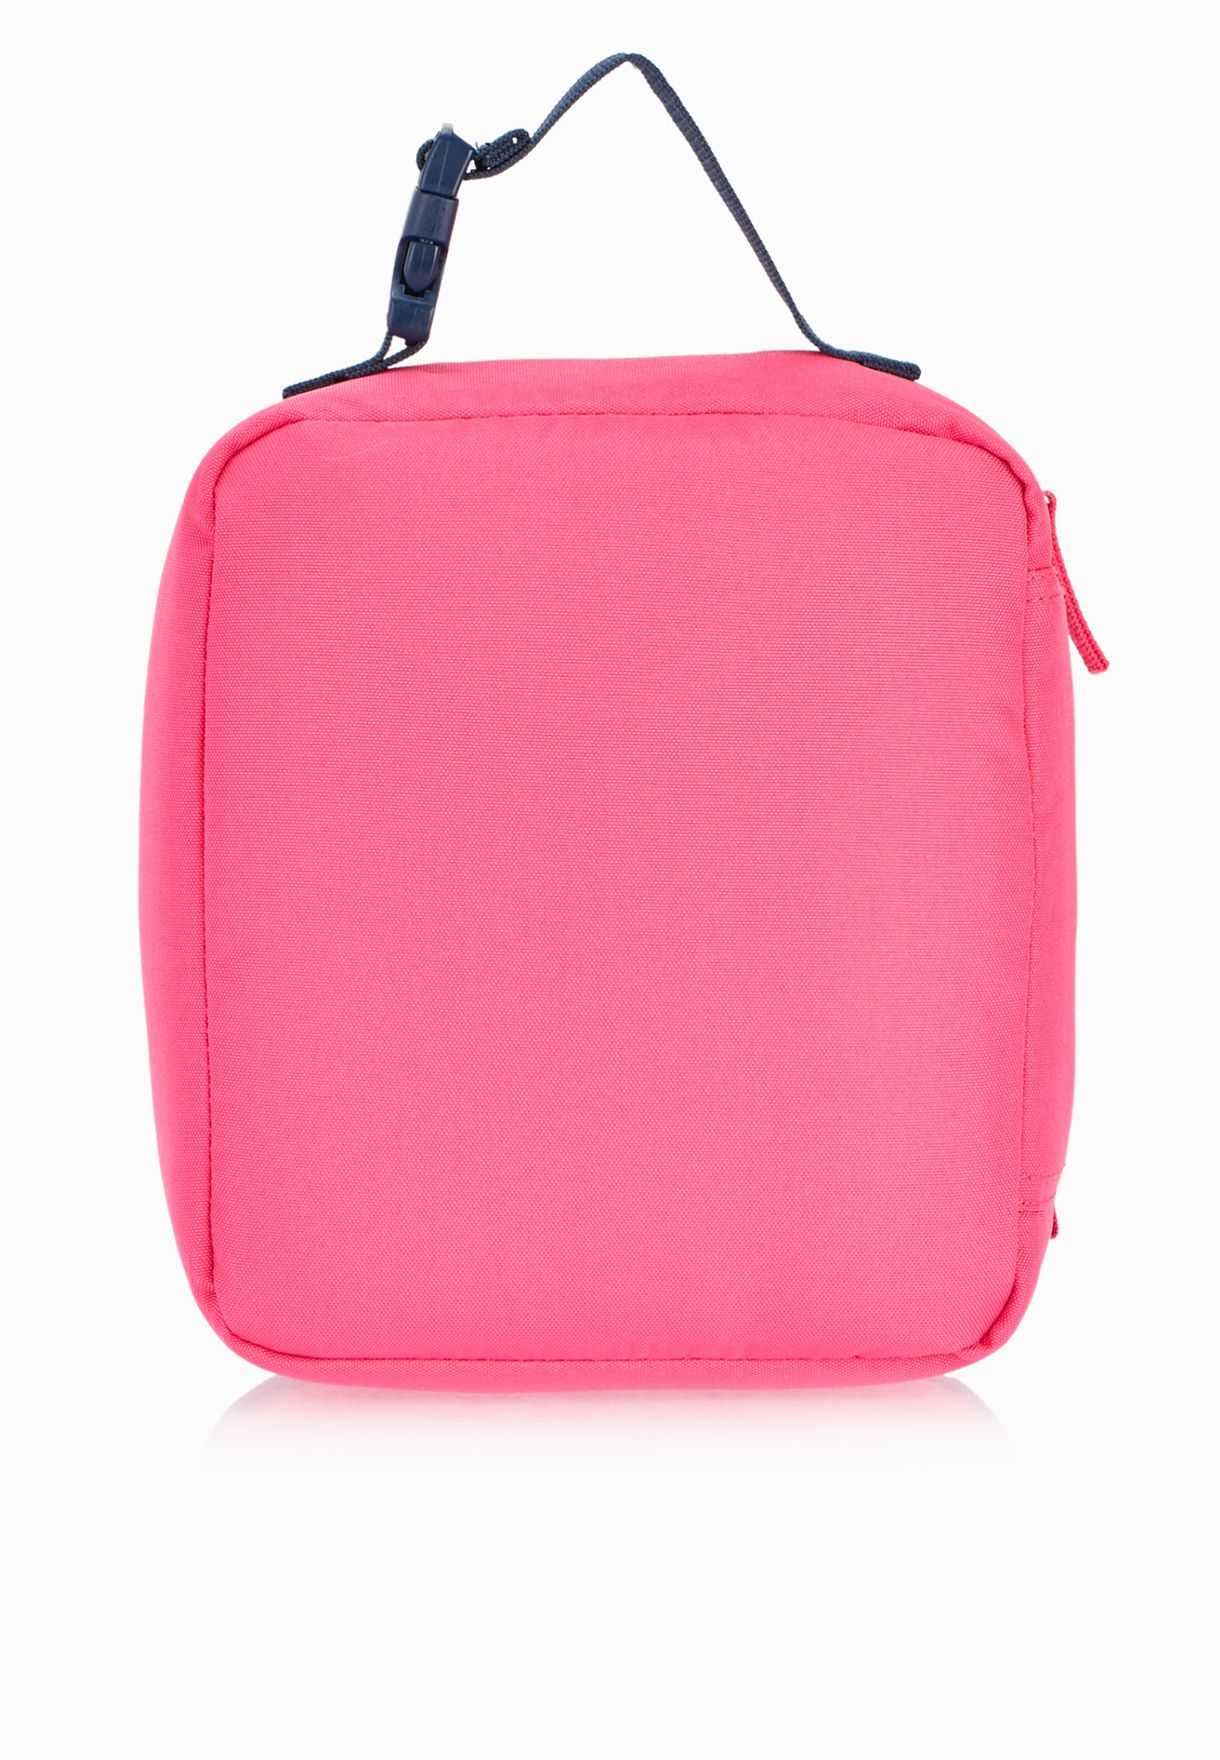 86d32e089a28 Shop Polo Ralph Lauren pink Banner Stripe II Lunch Kit 950089 for ...